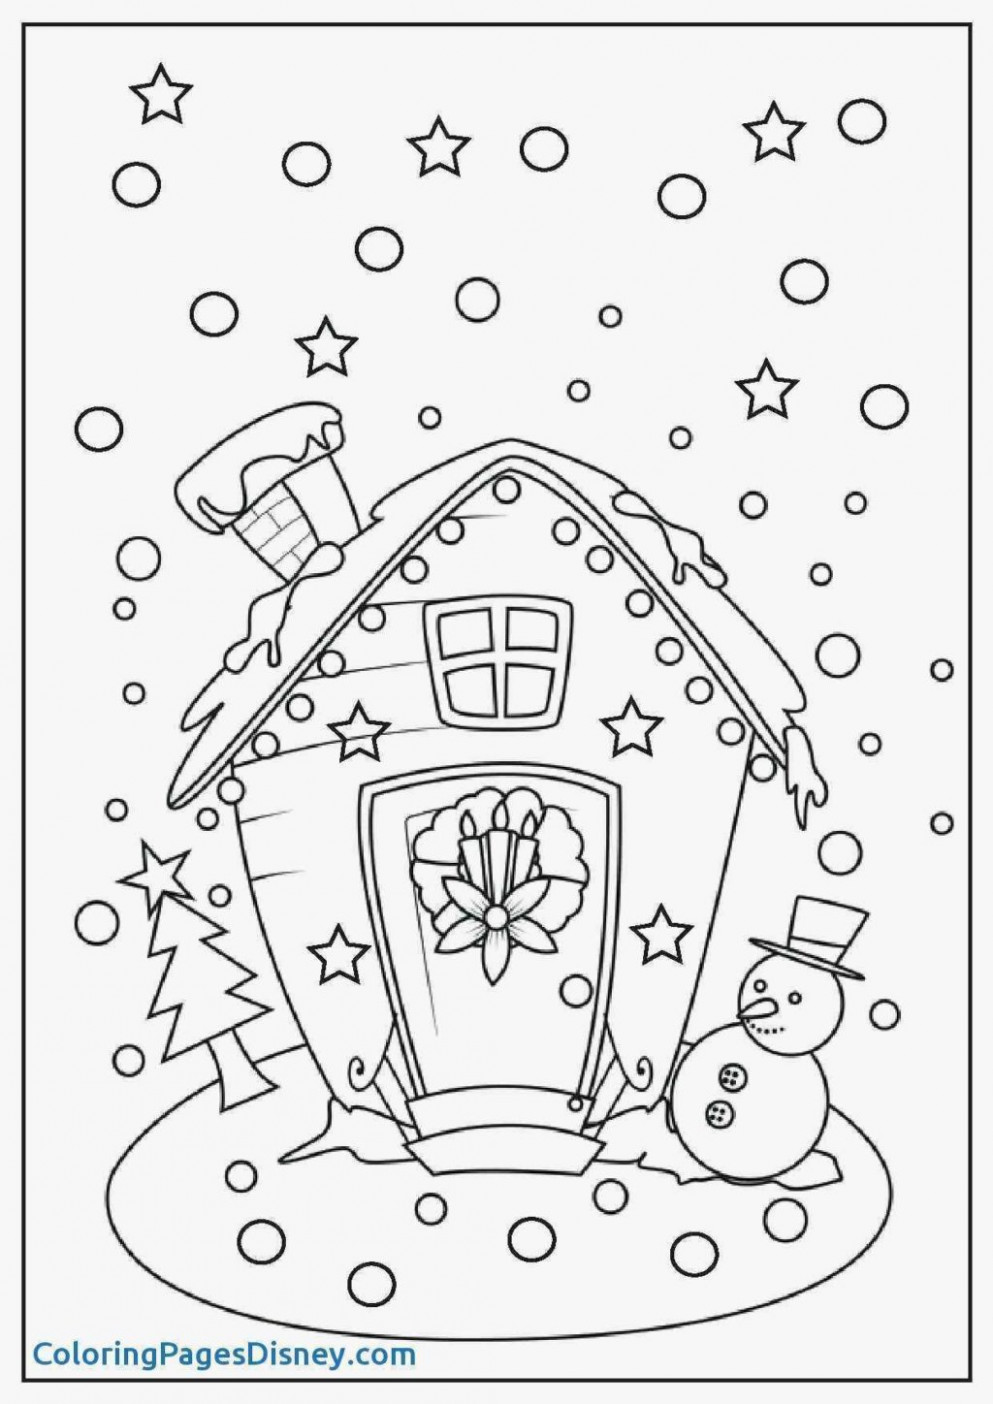 Coloring Book World ~ Coloring Book World Free Christmas Wreath ..